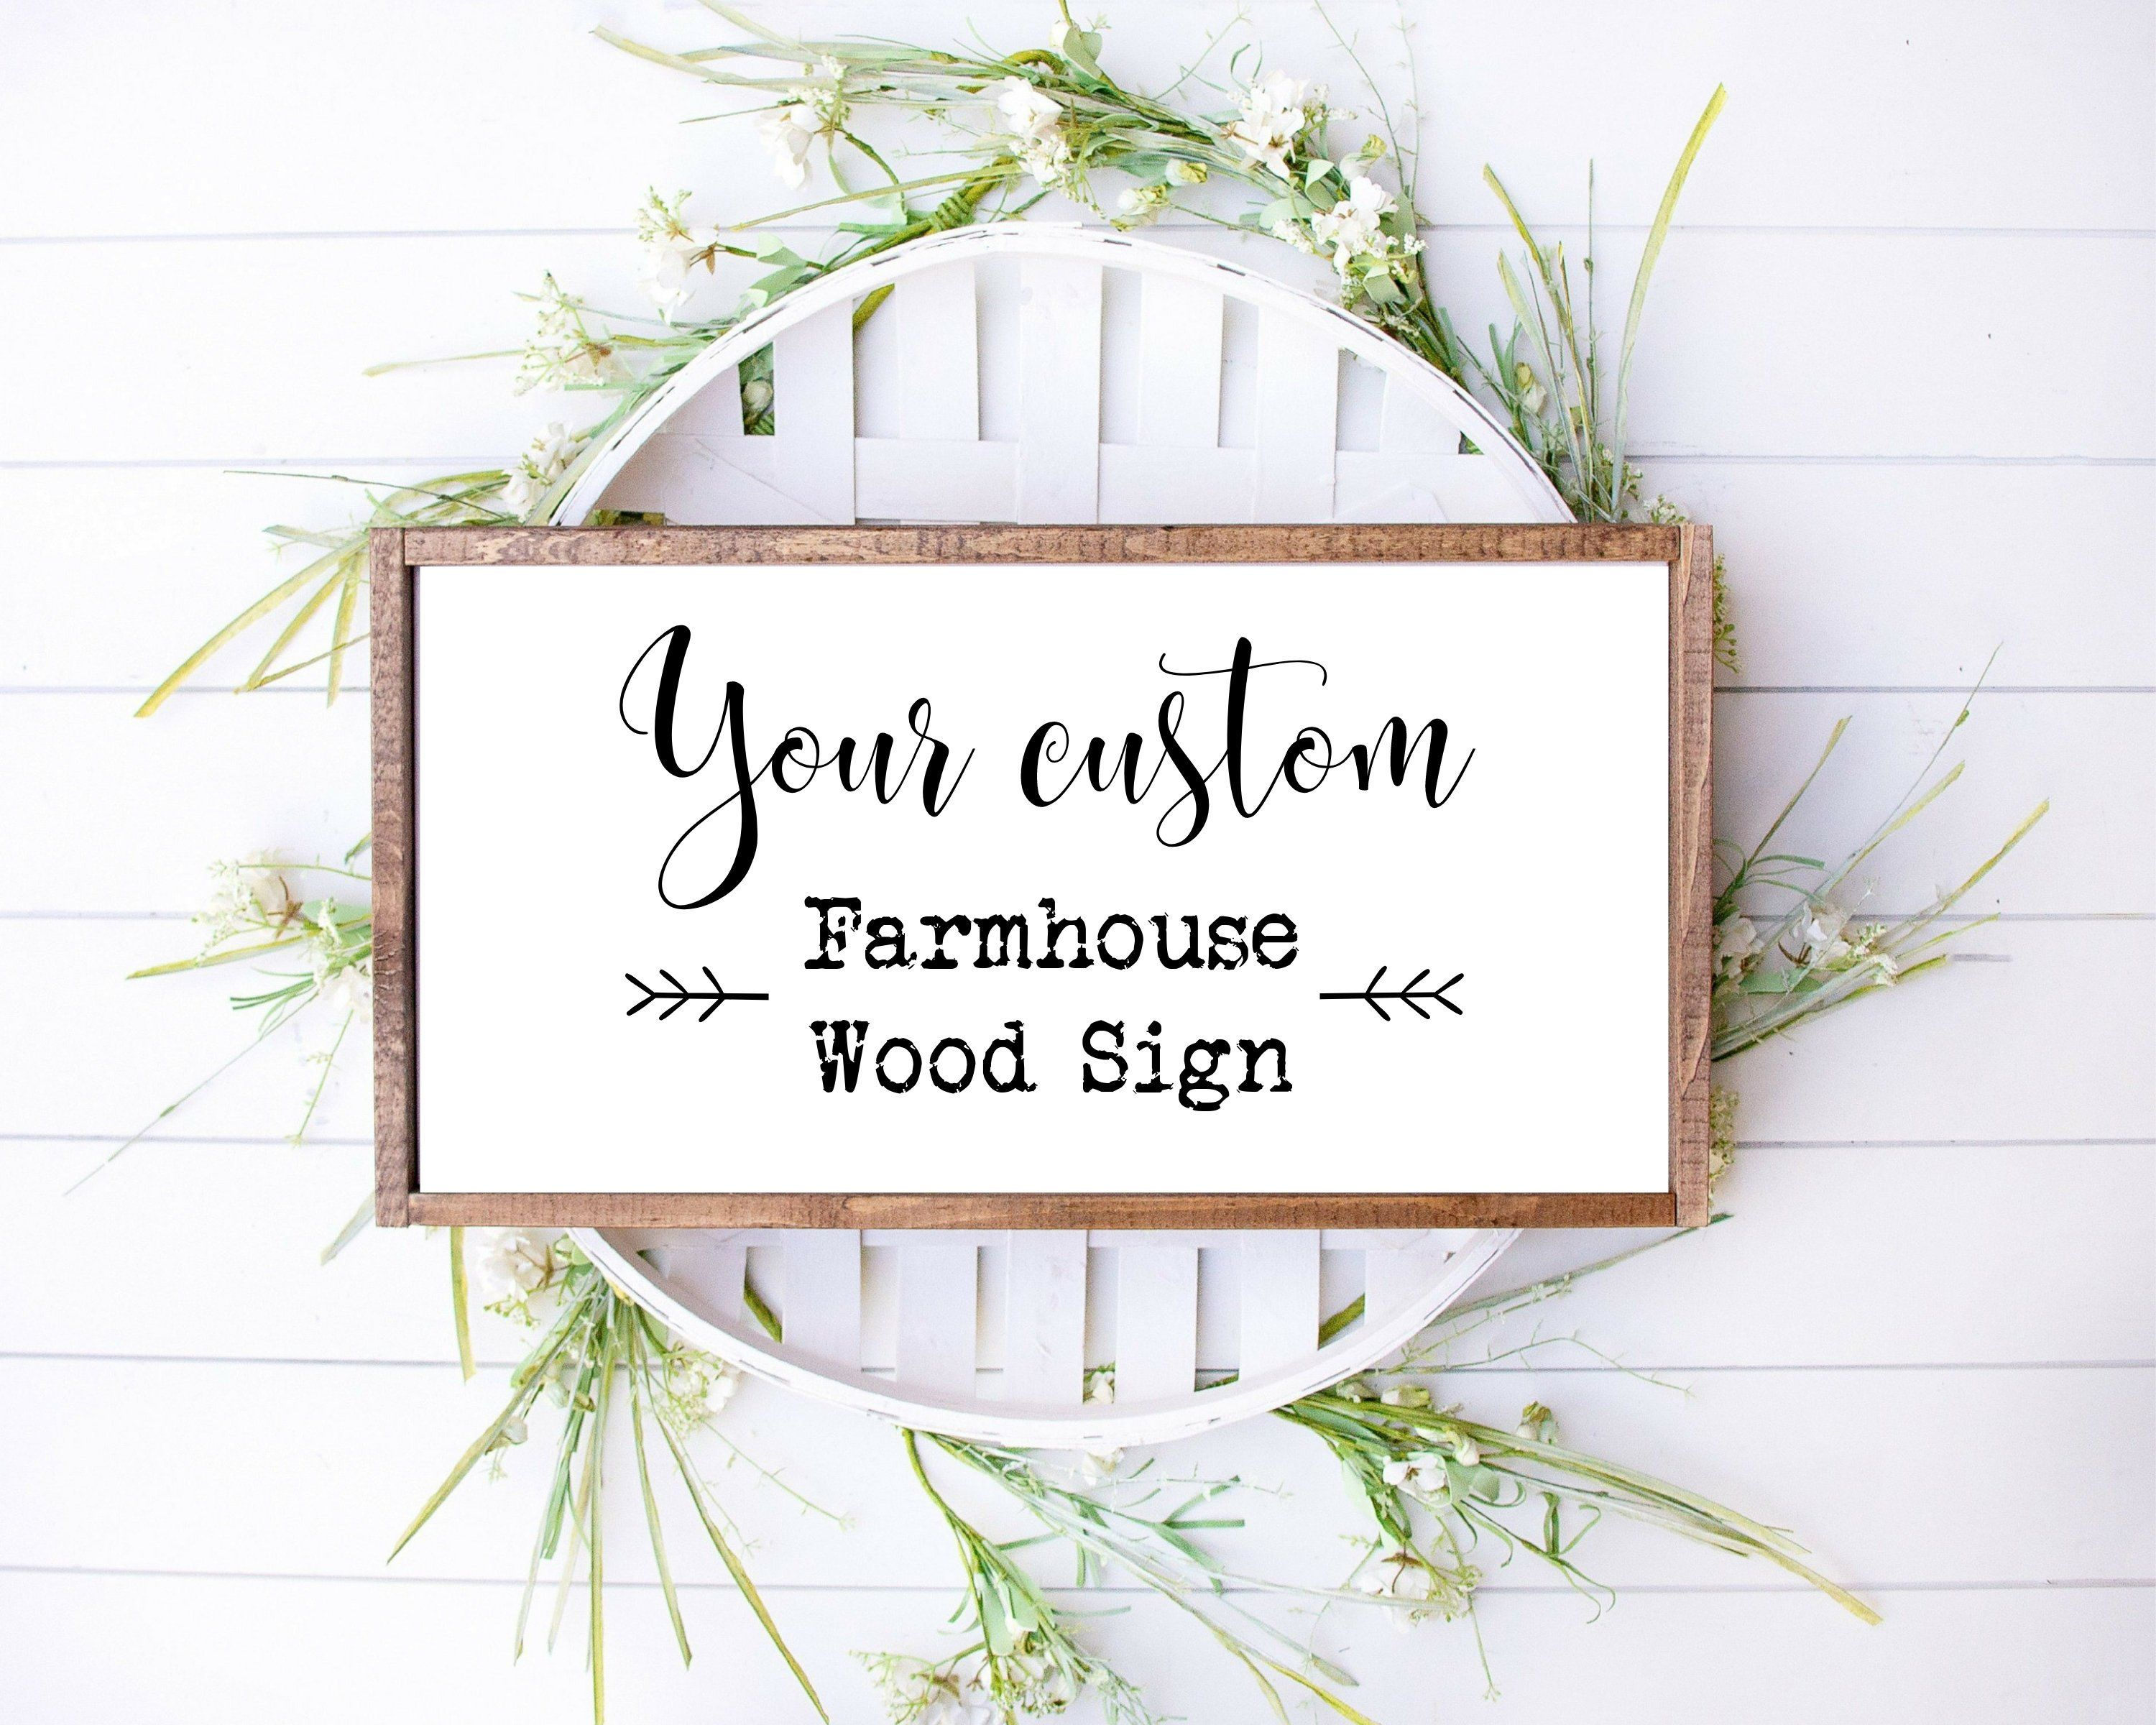 Farmhouse Wood Signs for bedroom, kitchen, living room decor - 6x6